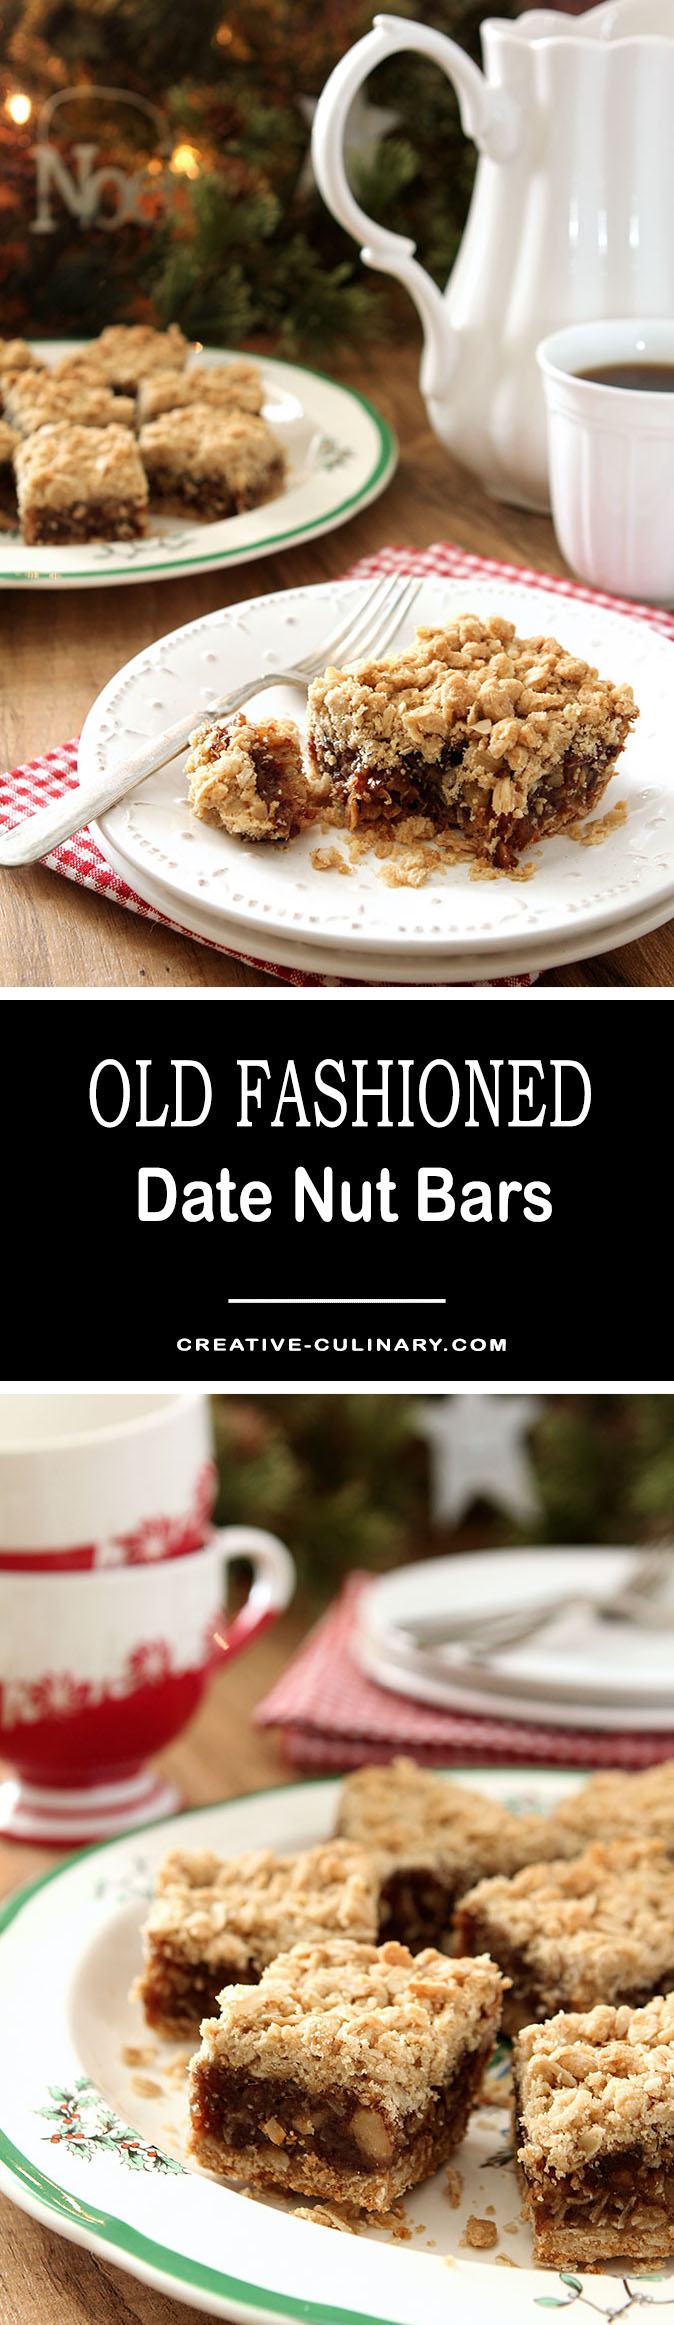 A quintessential holiday treat, these Old Fashioned Date Nut Bars are rich and gooey with a crisp oatmeal topping. Always a family favorite!